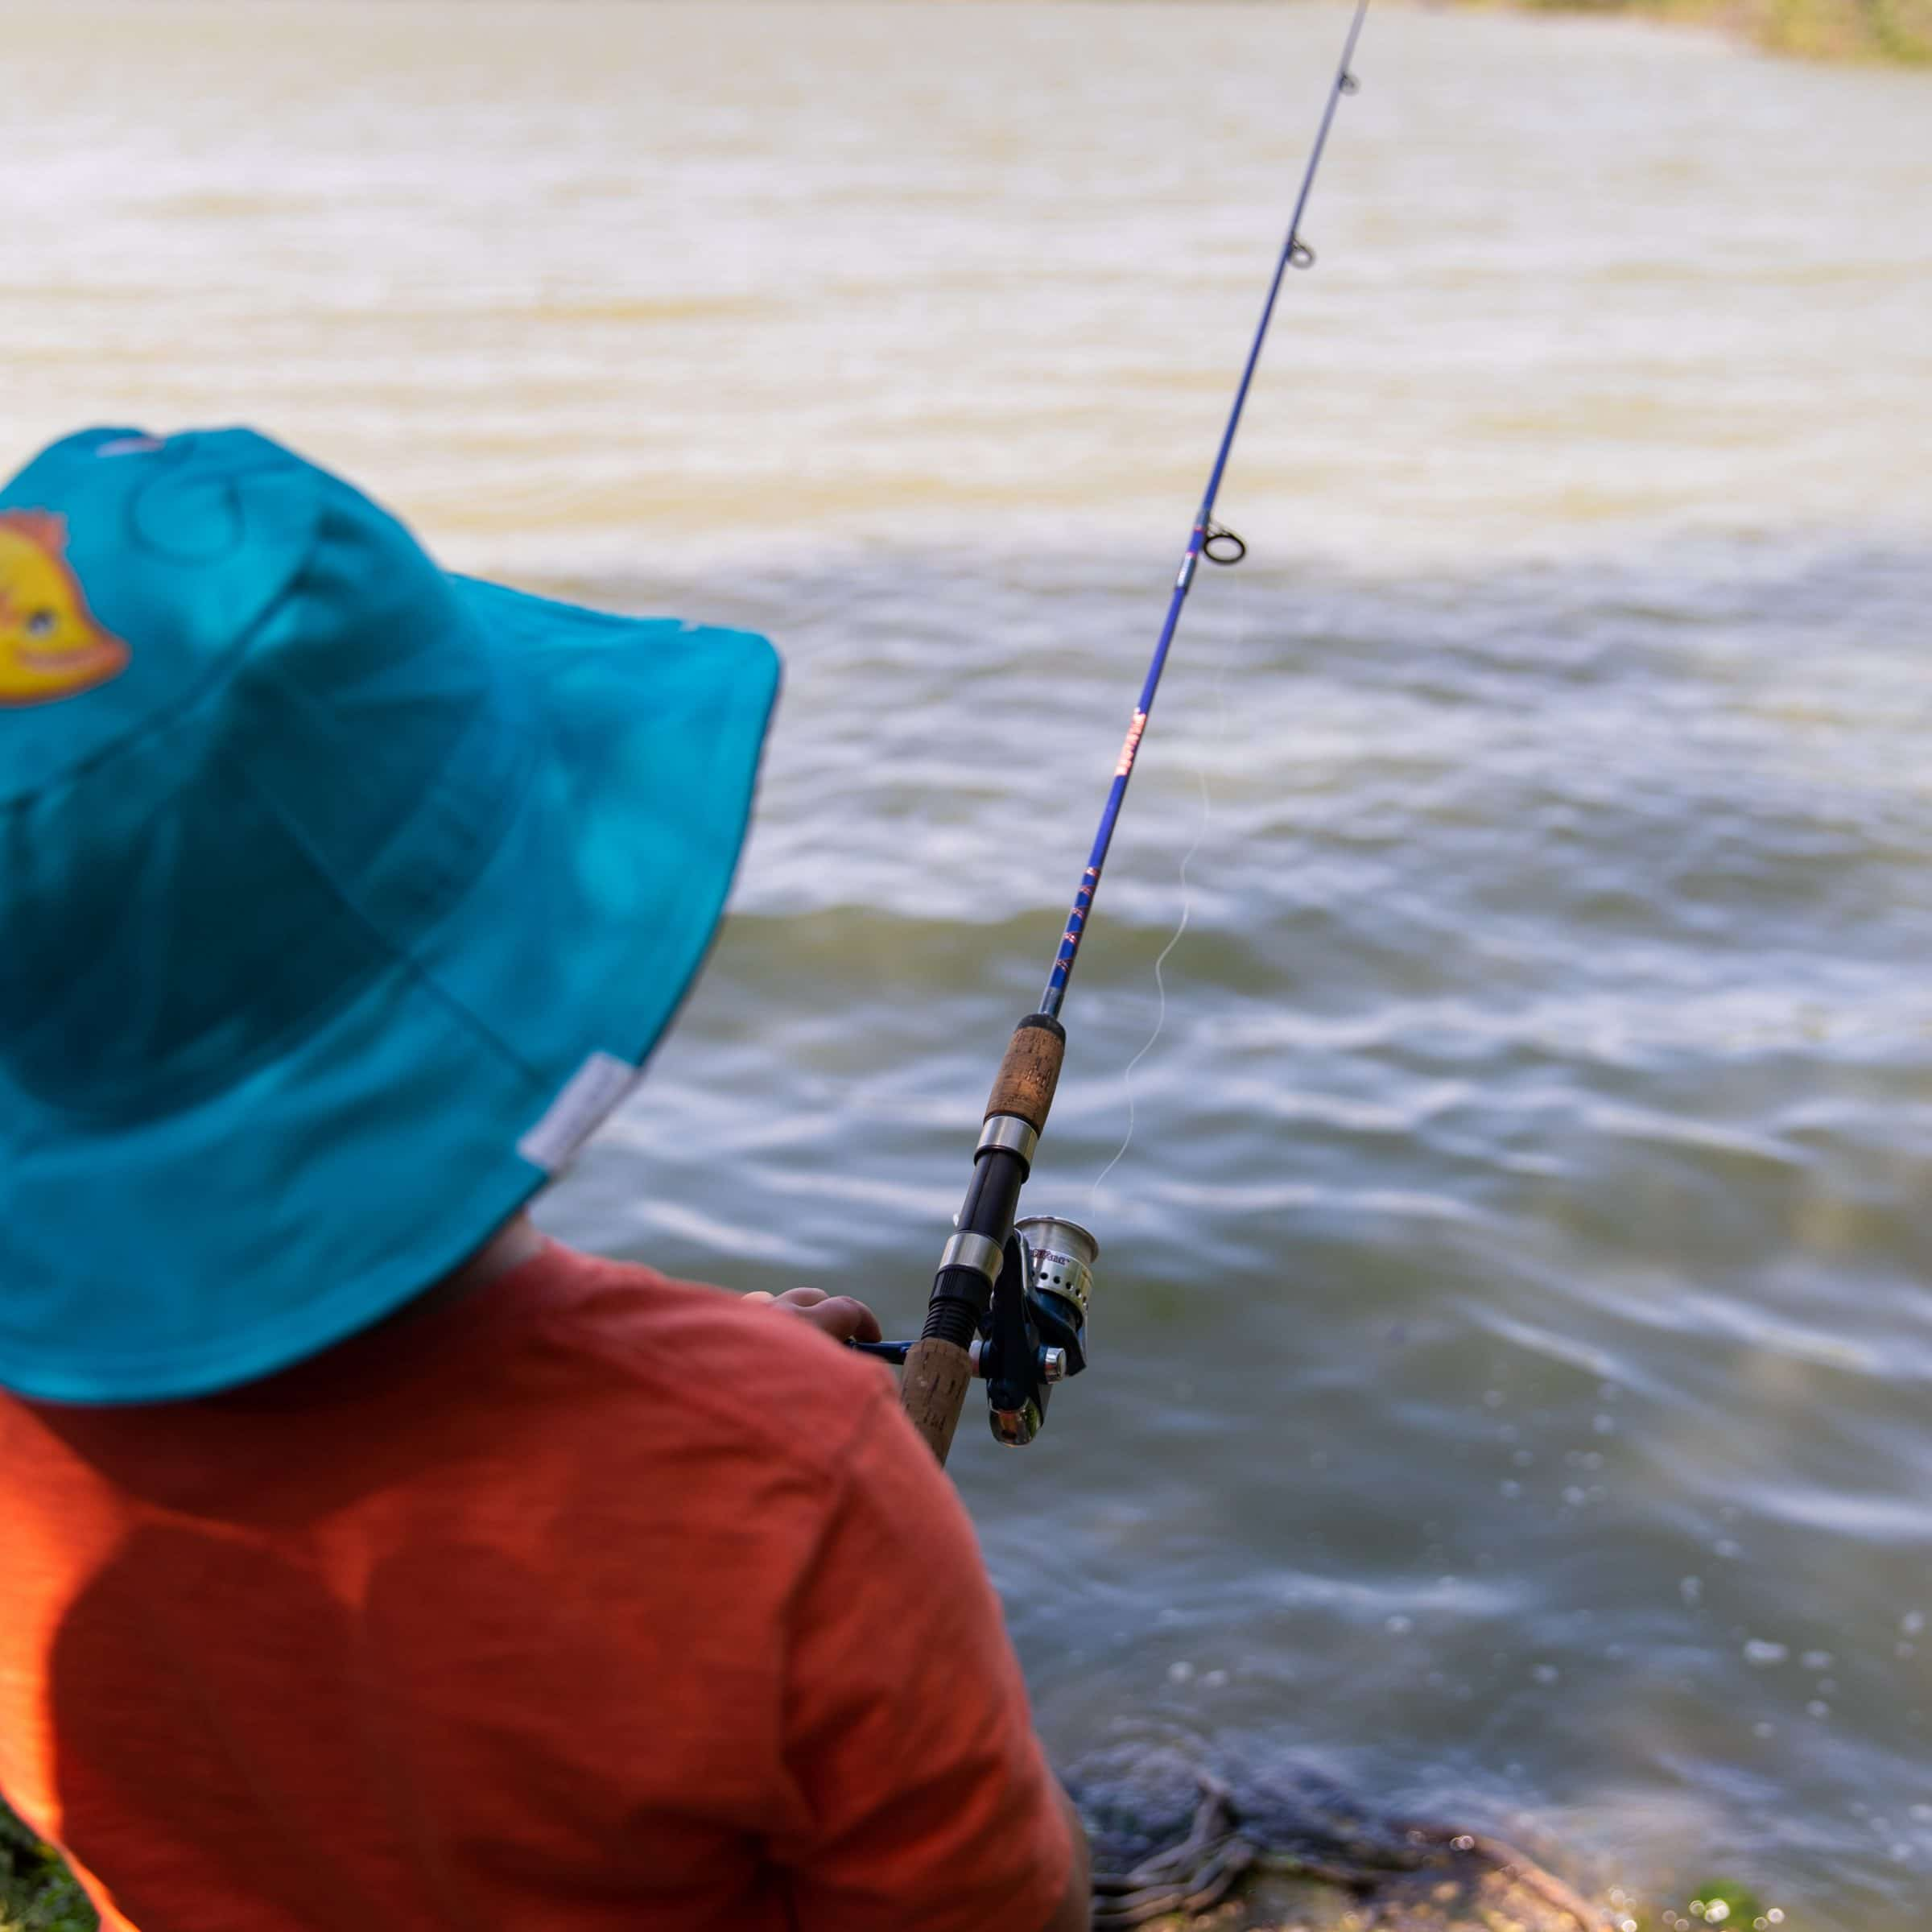 A child wearing a blue hat holds a fishing rod by the lake.